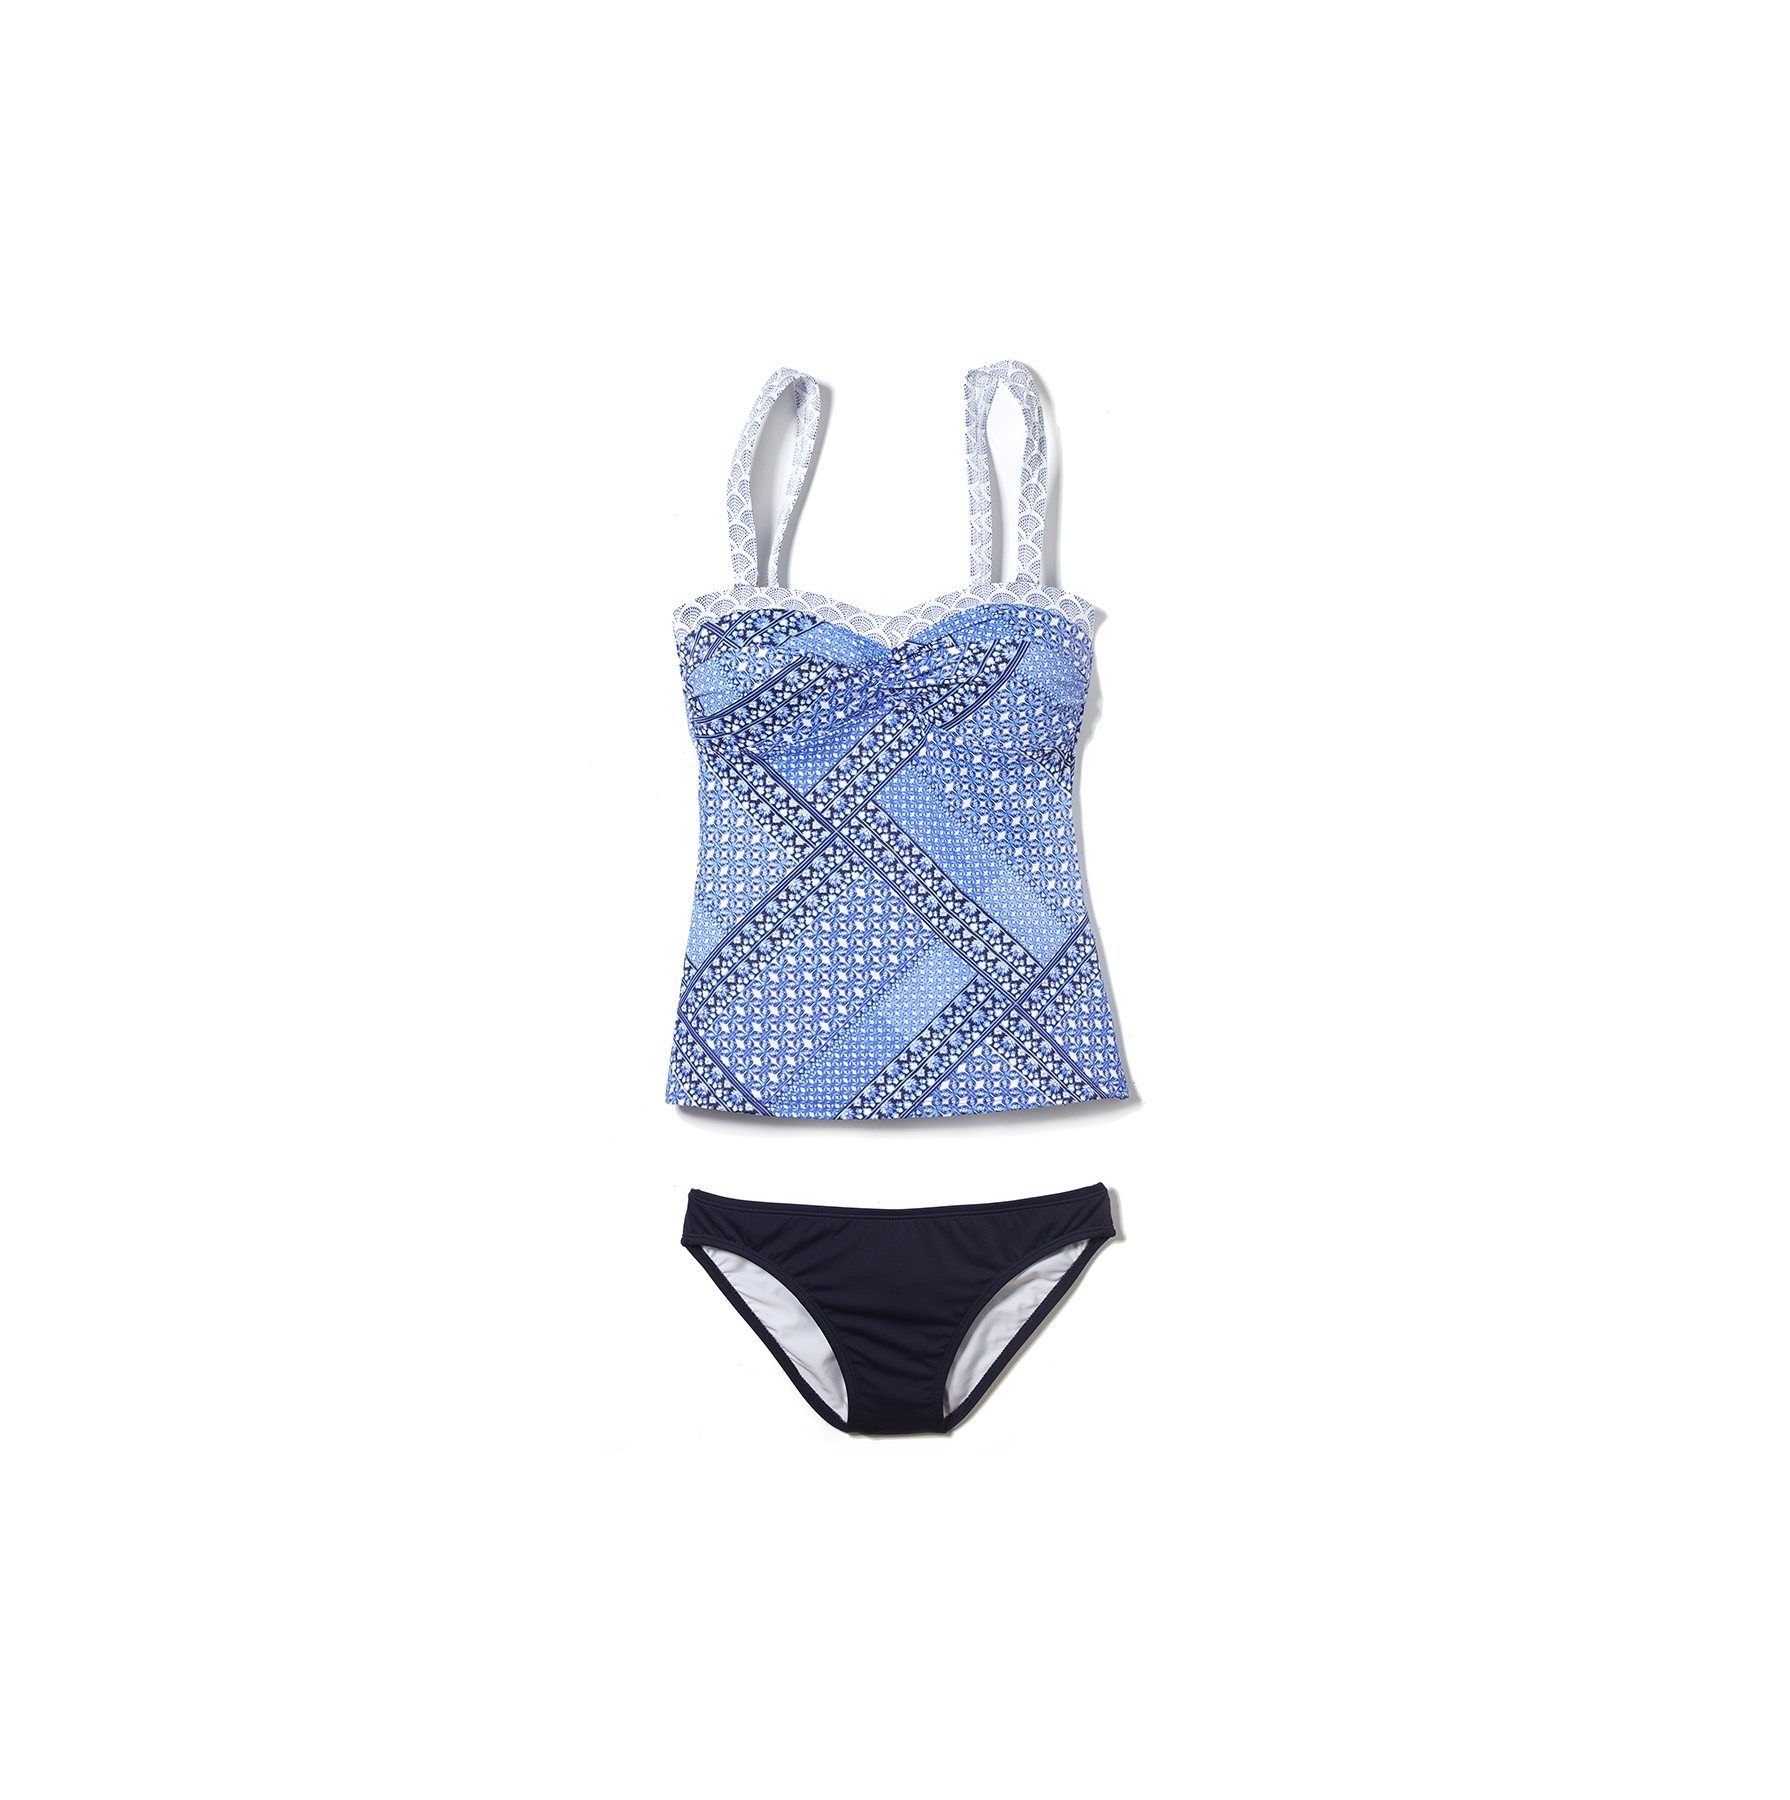 ece5f04698 The Best Swimsuits for Every Body Type